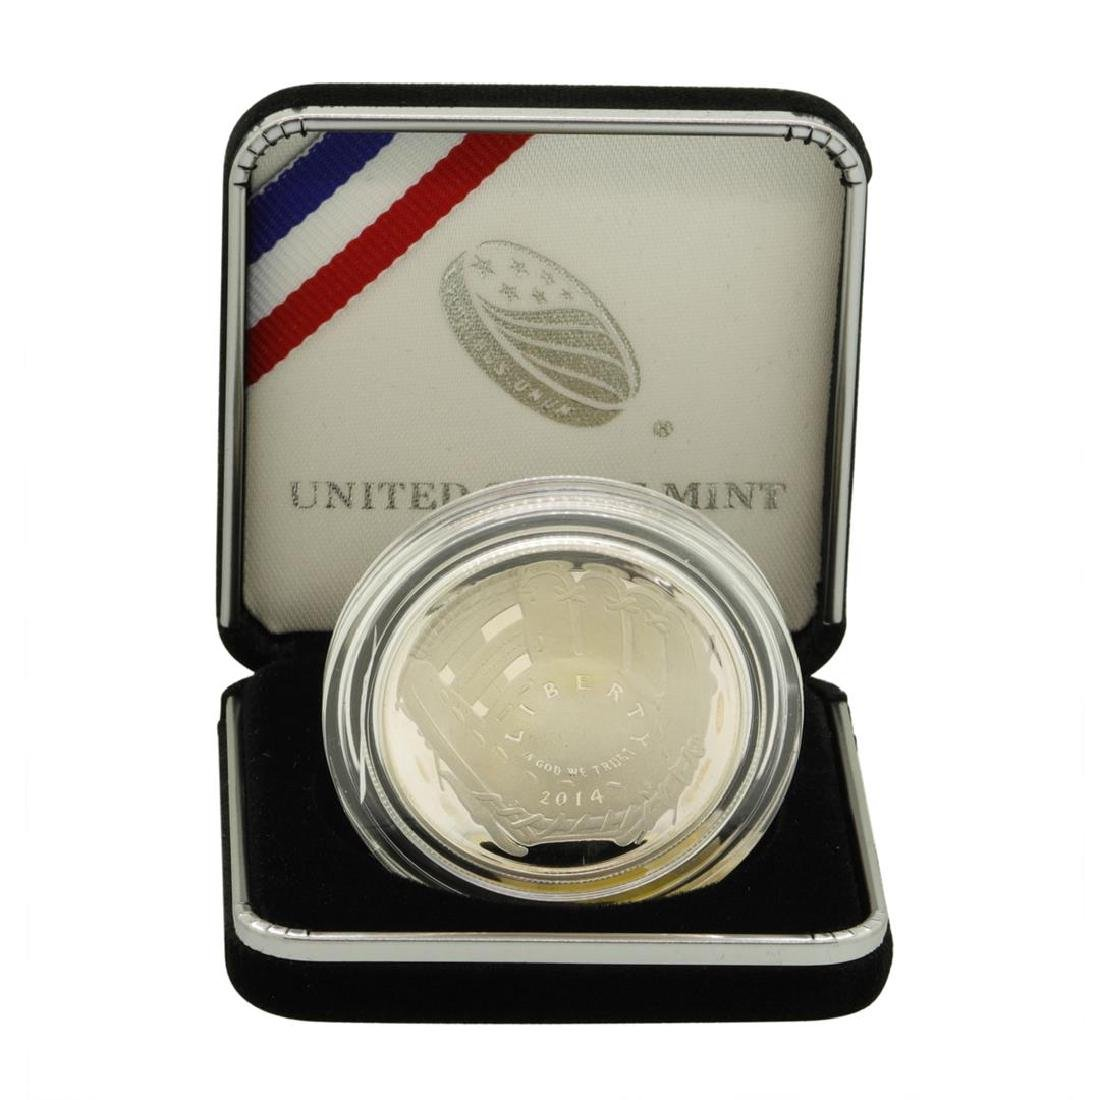 2014 $1 National Baseball Hall of Fame Proof Silver